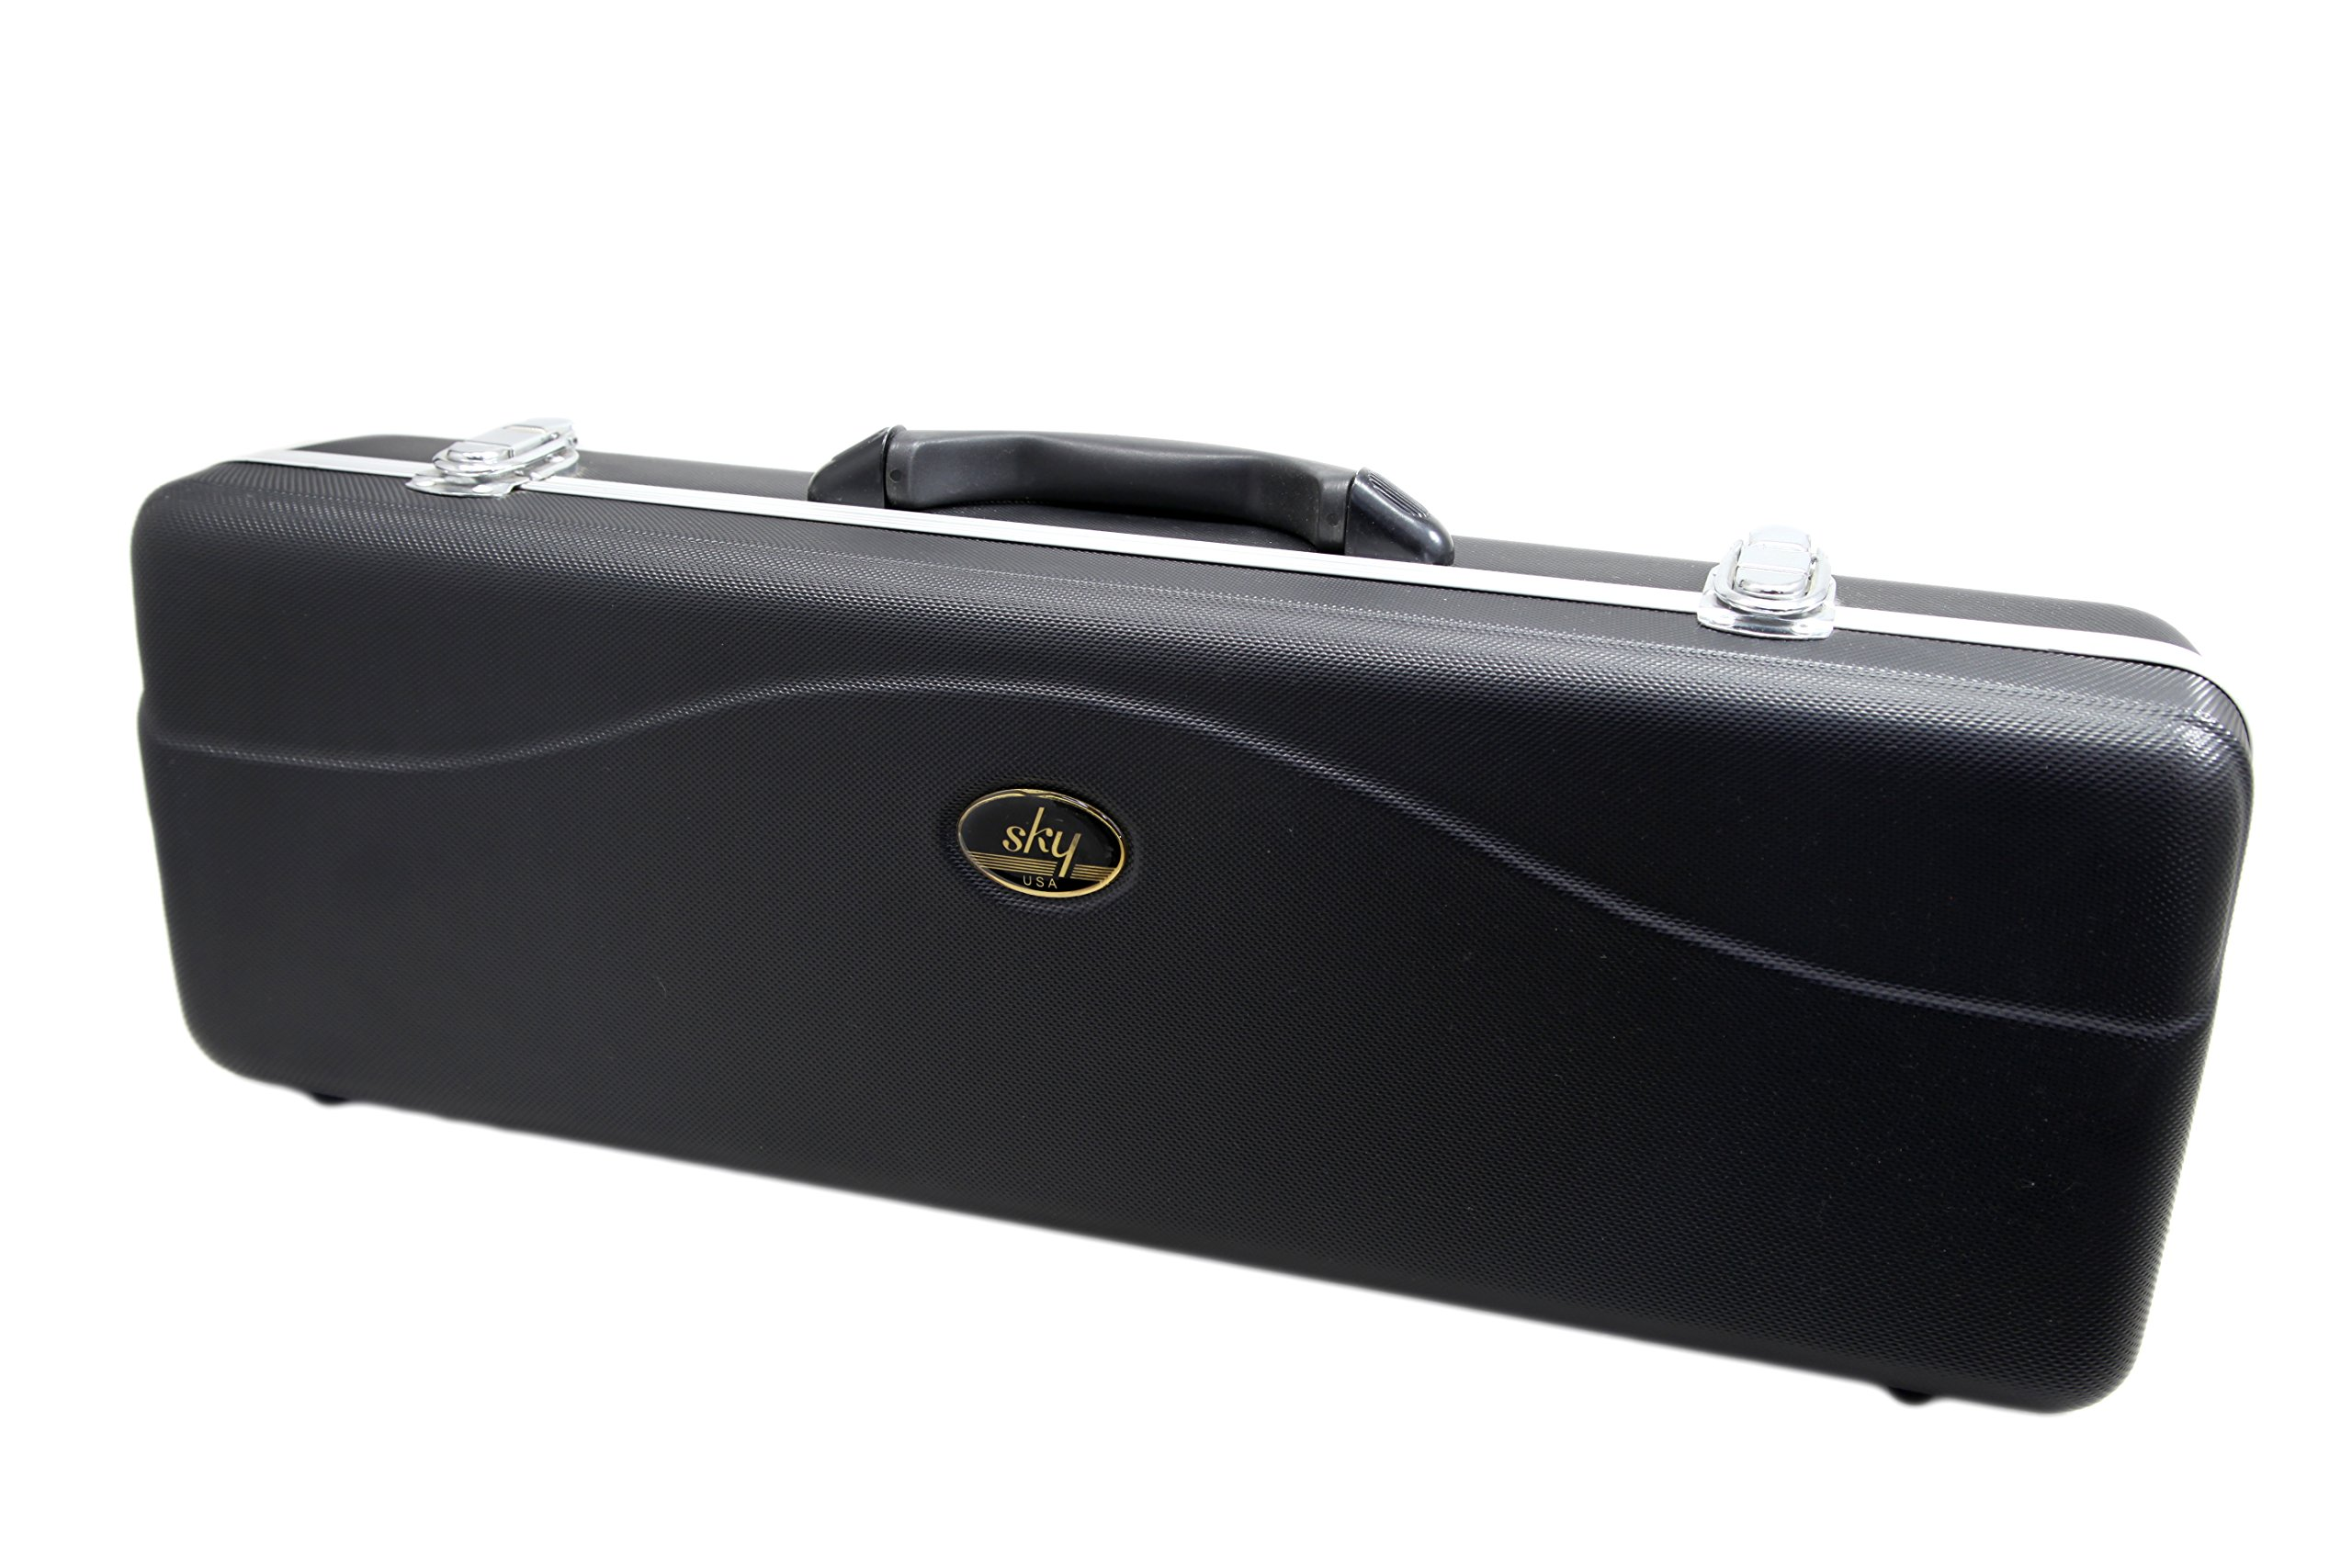 SKY Lightweight ABS Case for Soprano Saxophone, Black